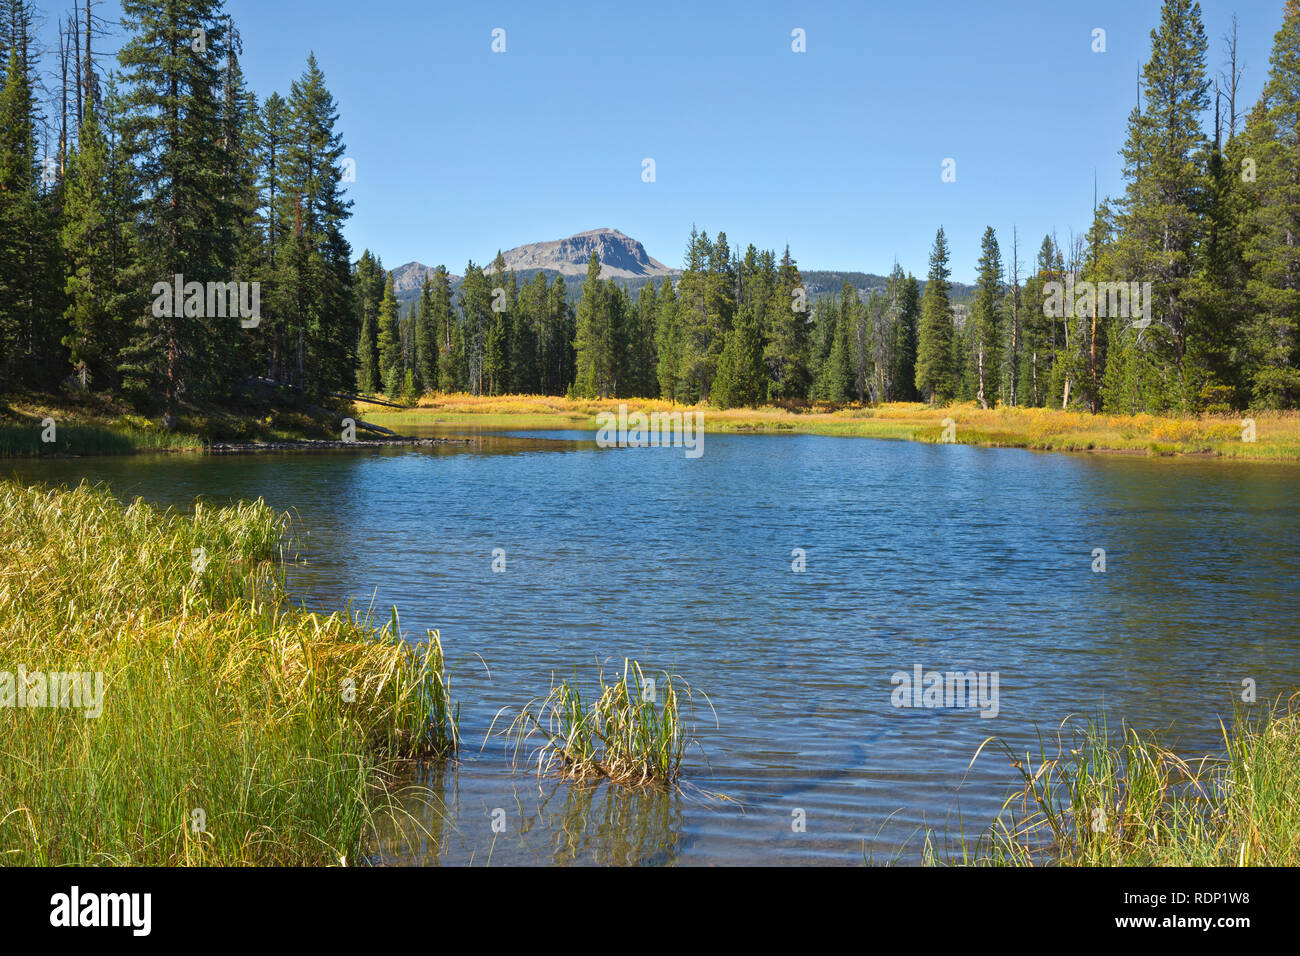 sal Gángster Salto  MT00260-00...MONTANA - Clark Fork of the Yellowstone River from the trail  to Kersey Lake in the Shoshone National Forest Stock Photo - Alamy